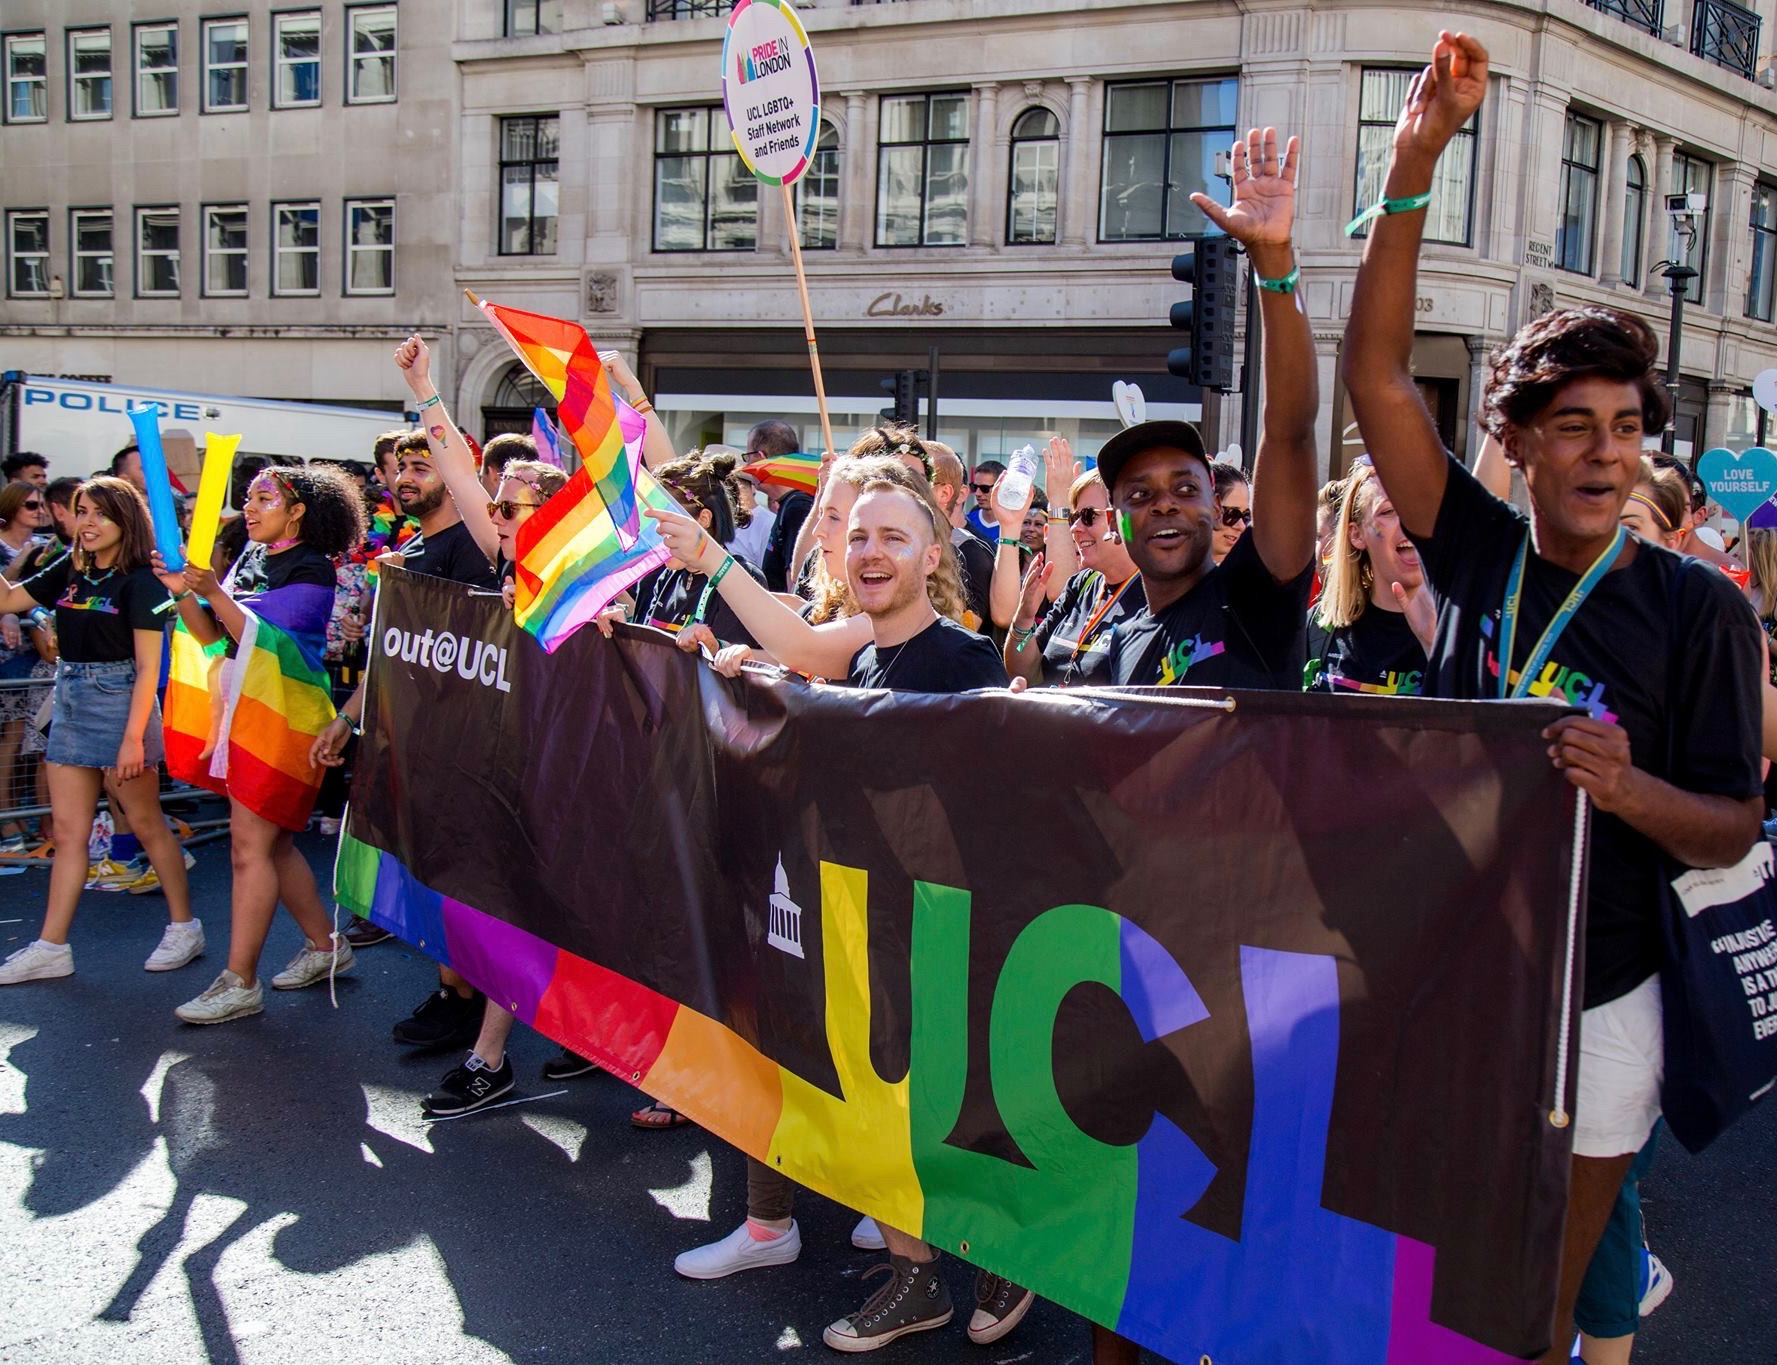 Out@UCL Pride in London